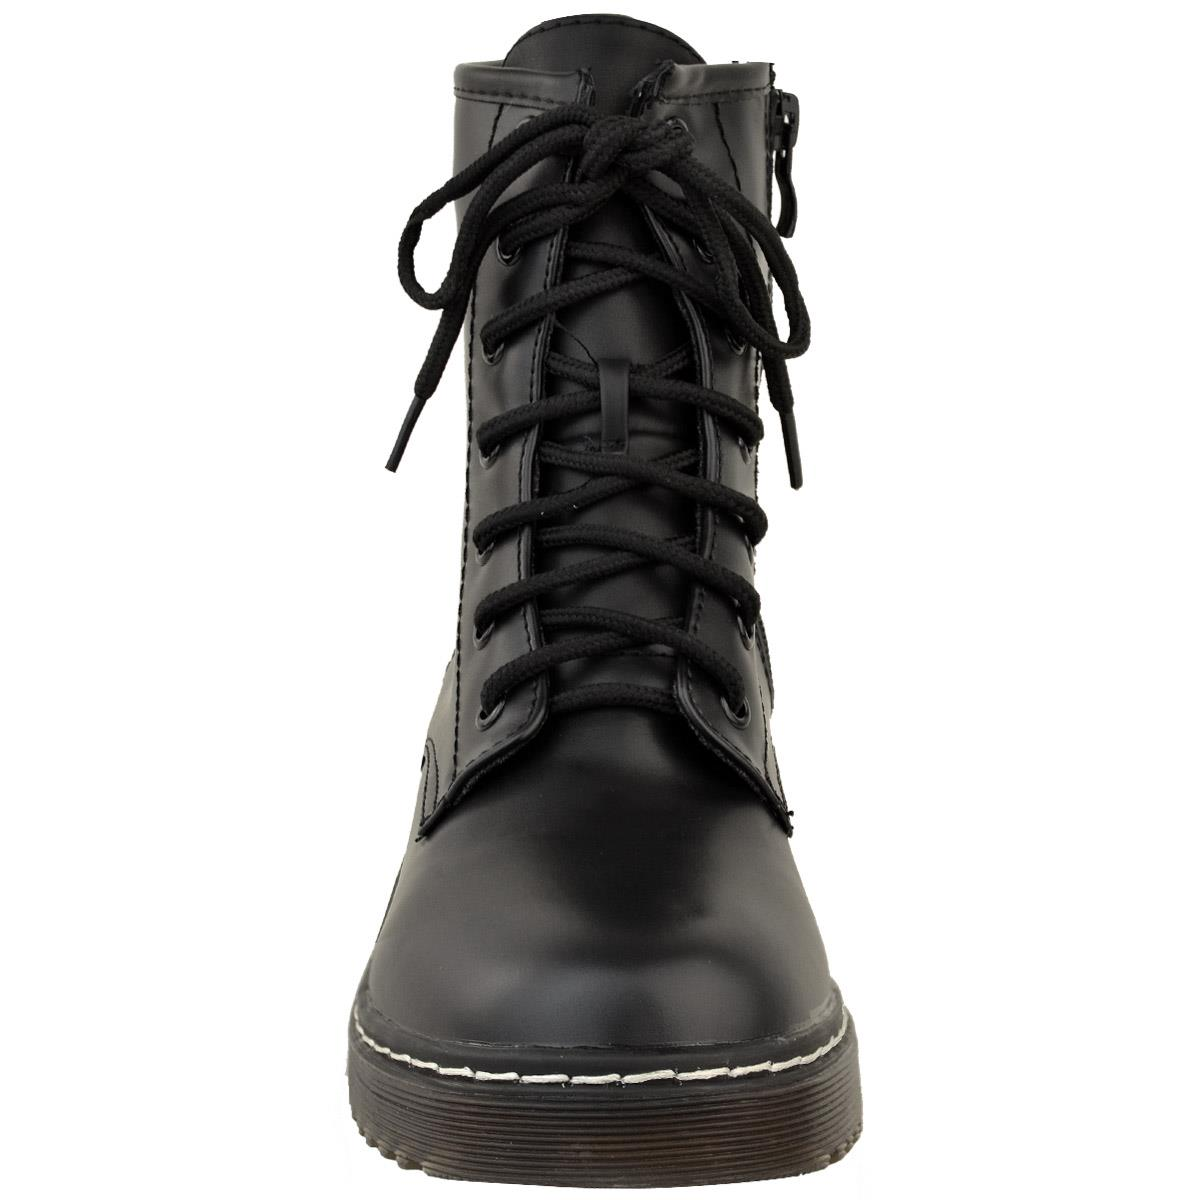 Womens-Ladies-Doc-Ankle-Boots-Low-Flat-Heel-Lace-Up-Worker-Army-Black-Goth-Size miniatuur 5